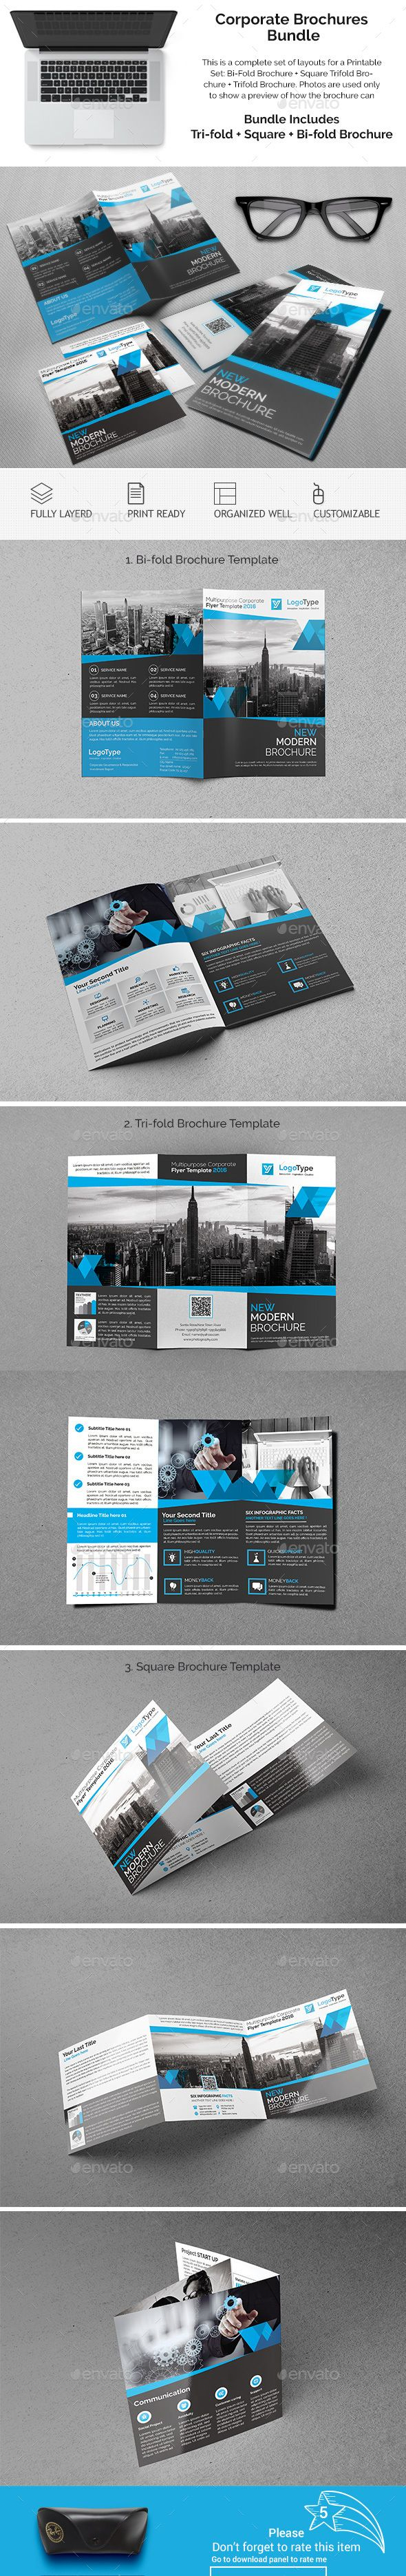 Printable Tri Fold Brochure Template Corporate Brochures Bundle 06 This Is A Complete Set Of Layouts For .